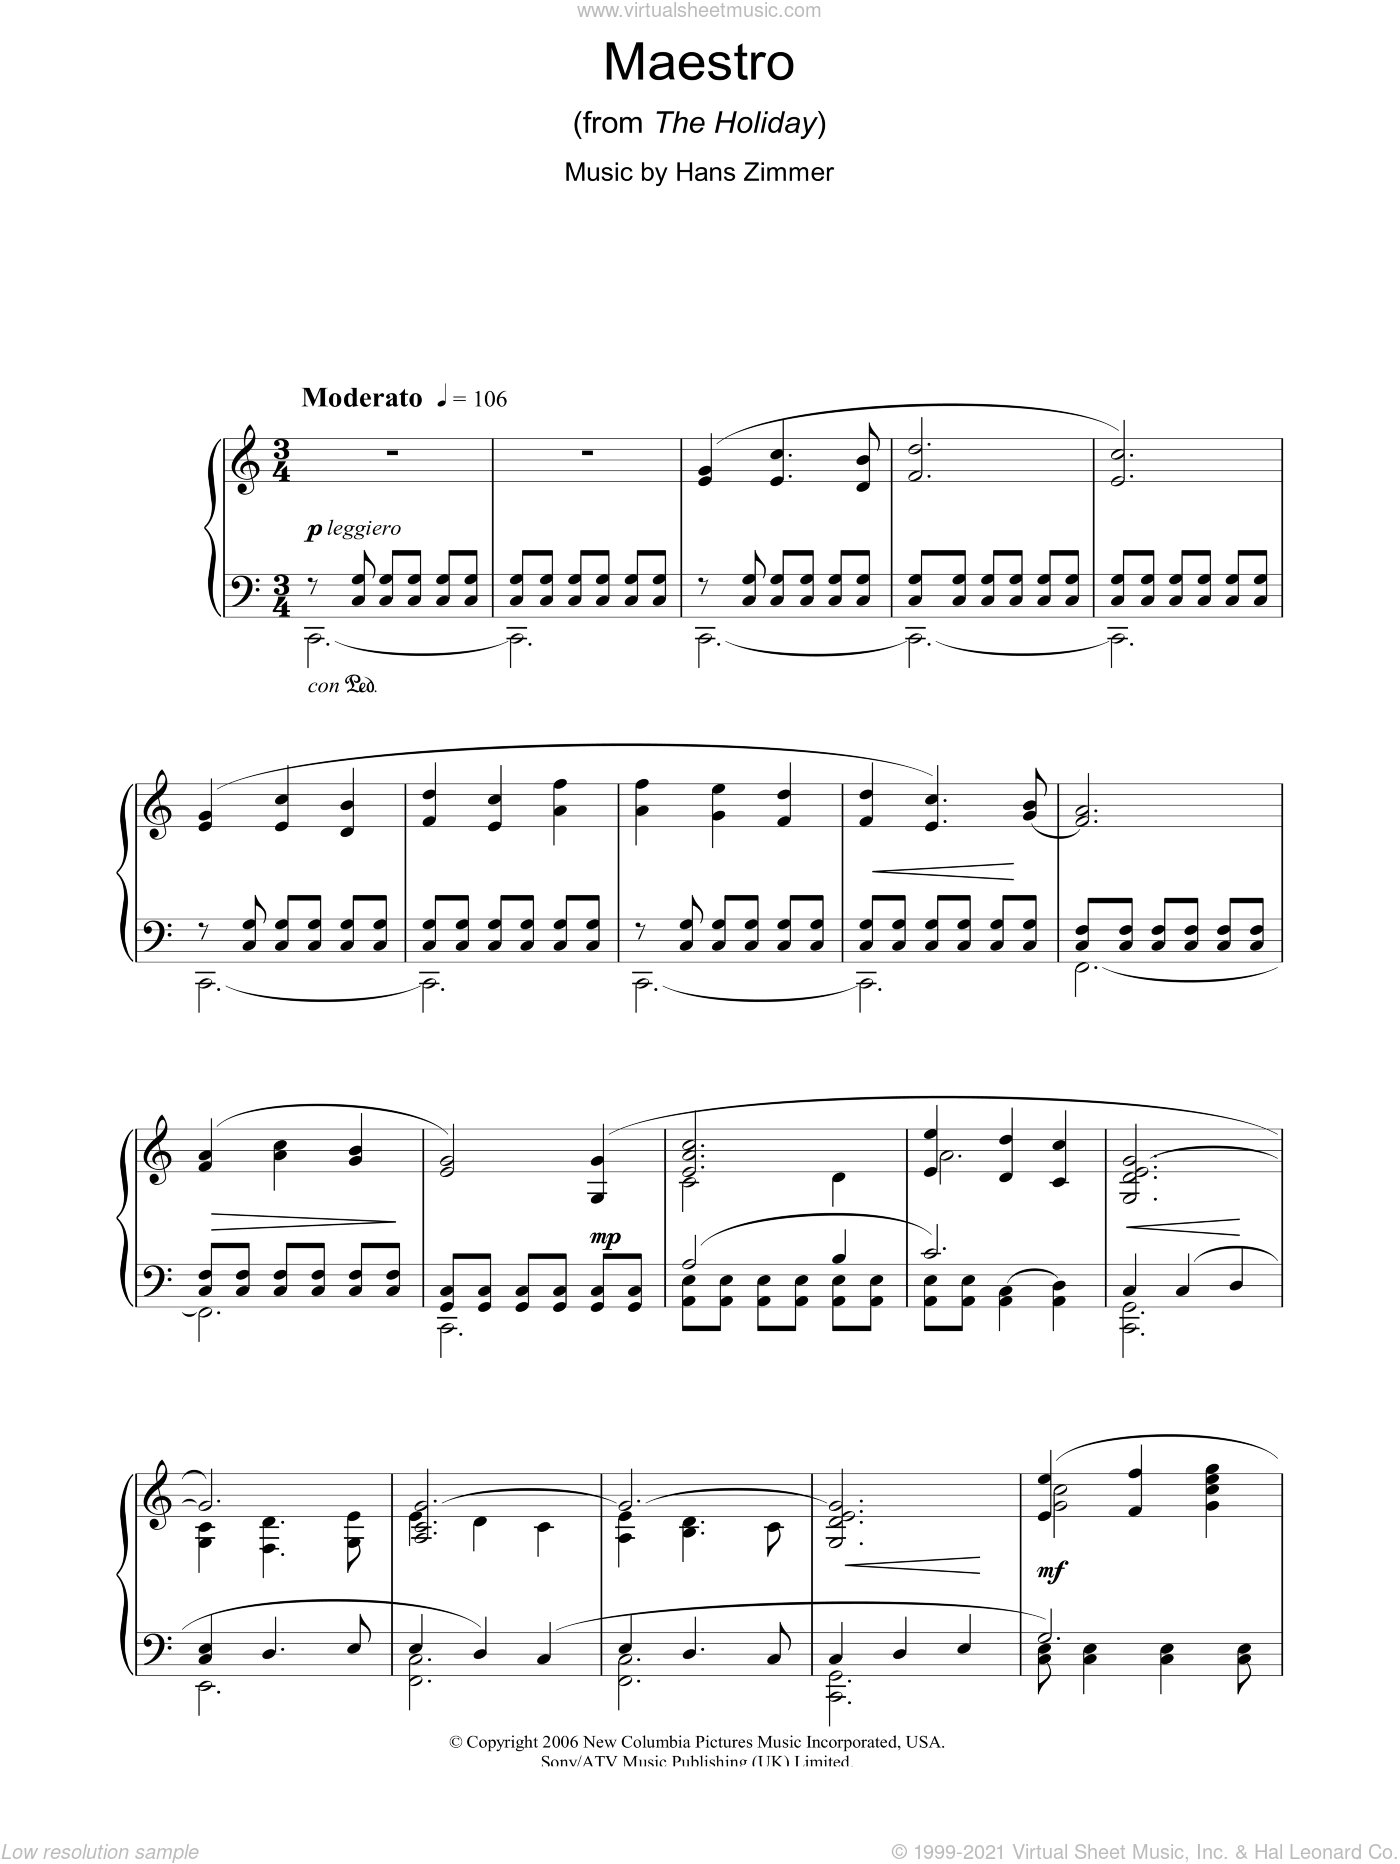 Maestro (from The Holiday) sheet music for piano solo by Hans Zimmer, intermediate skill level